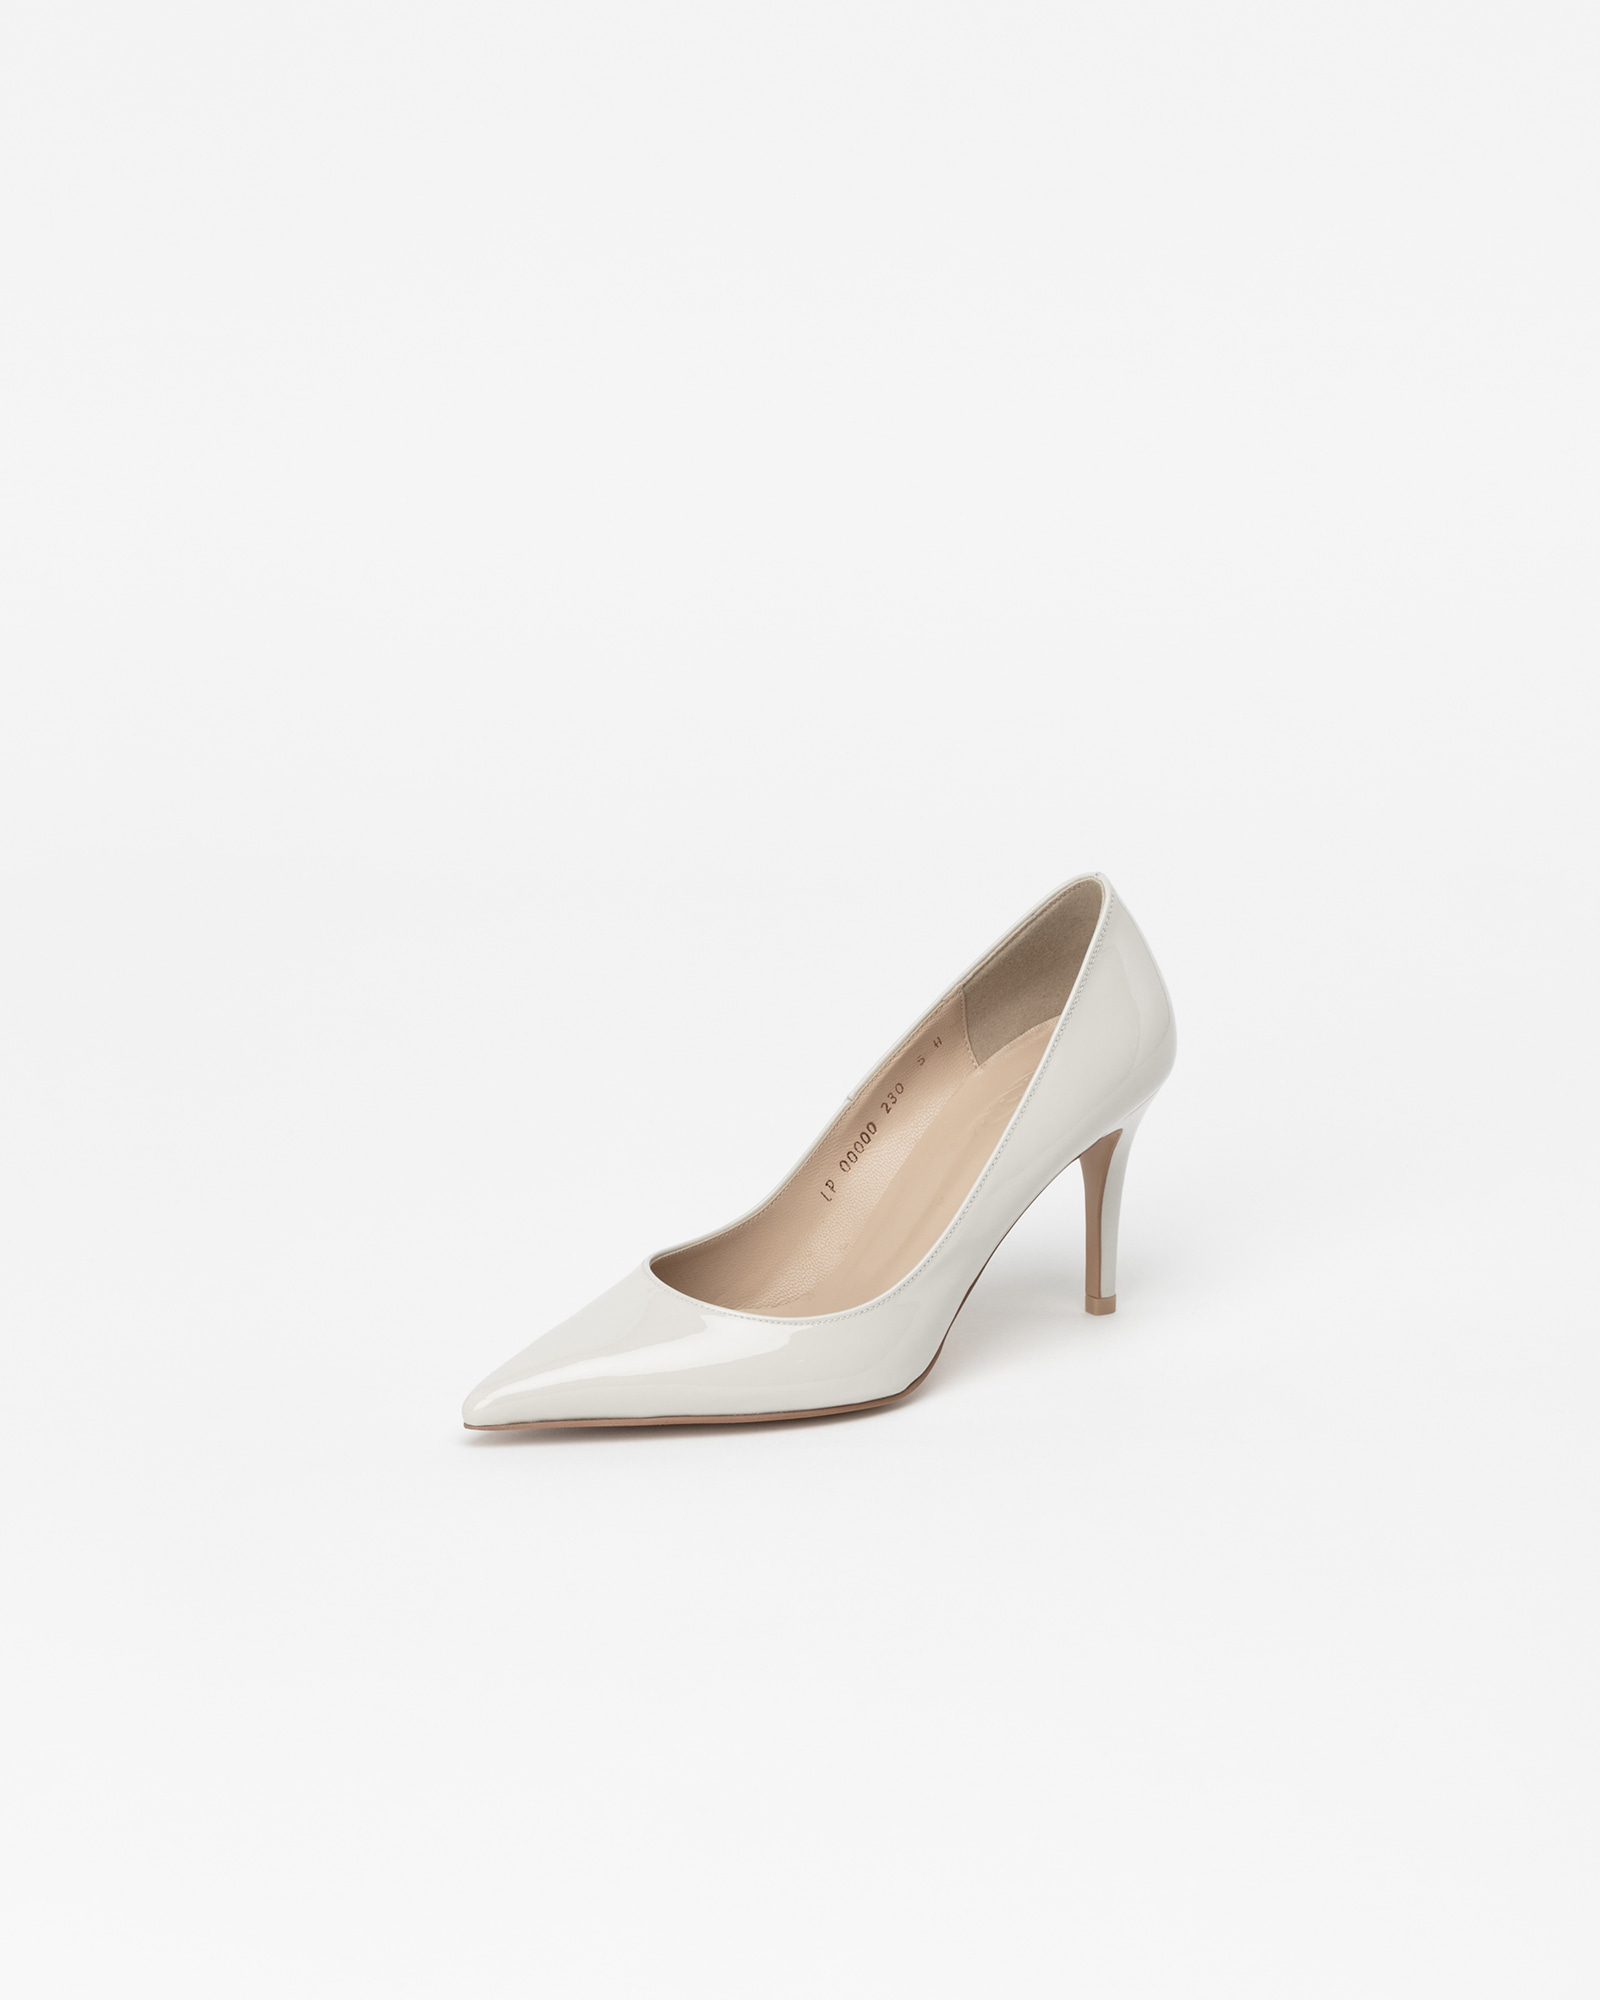 Chauffeur Stiletto Pumps in Ice Gray Patent